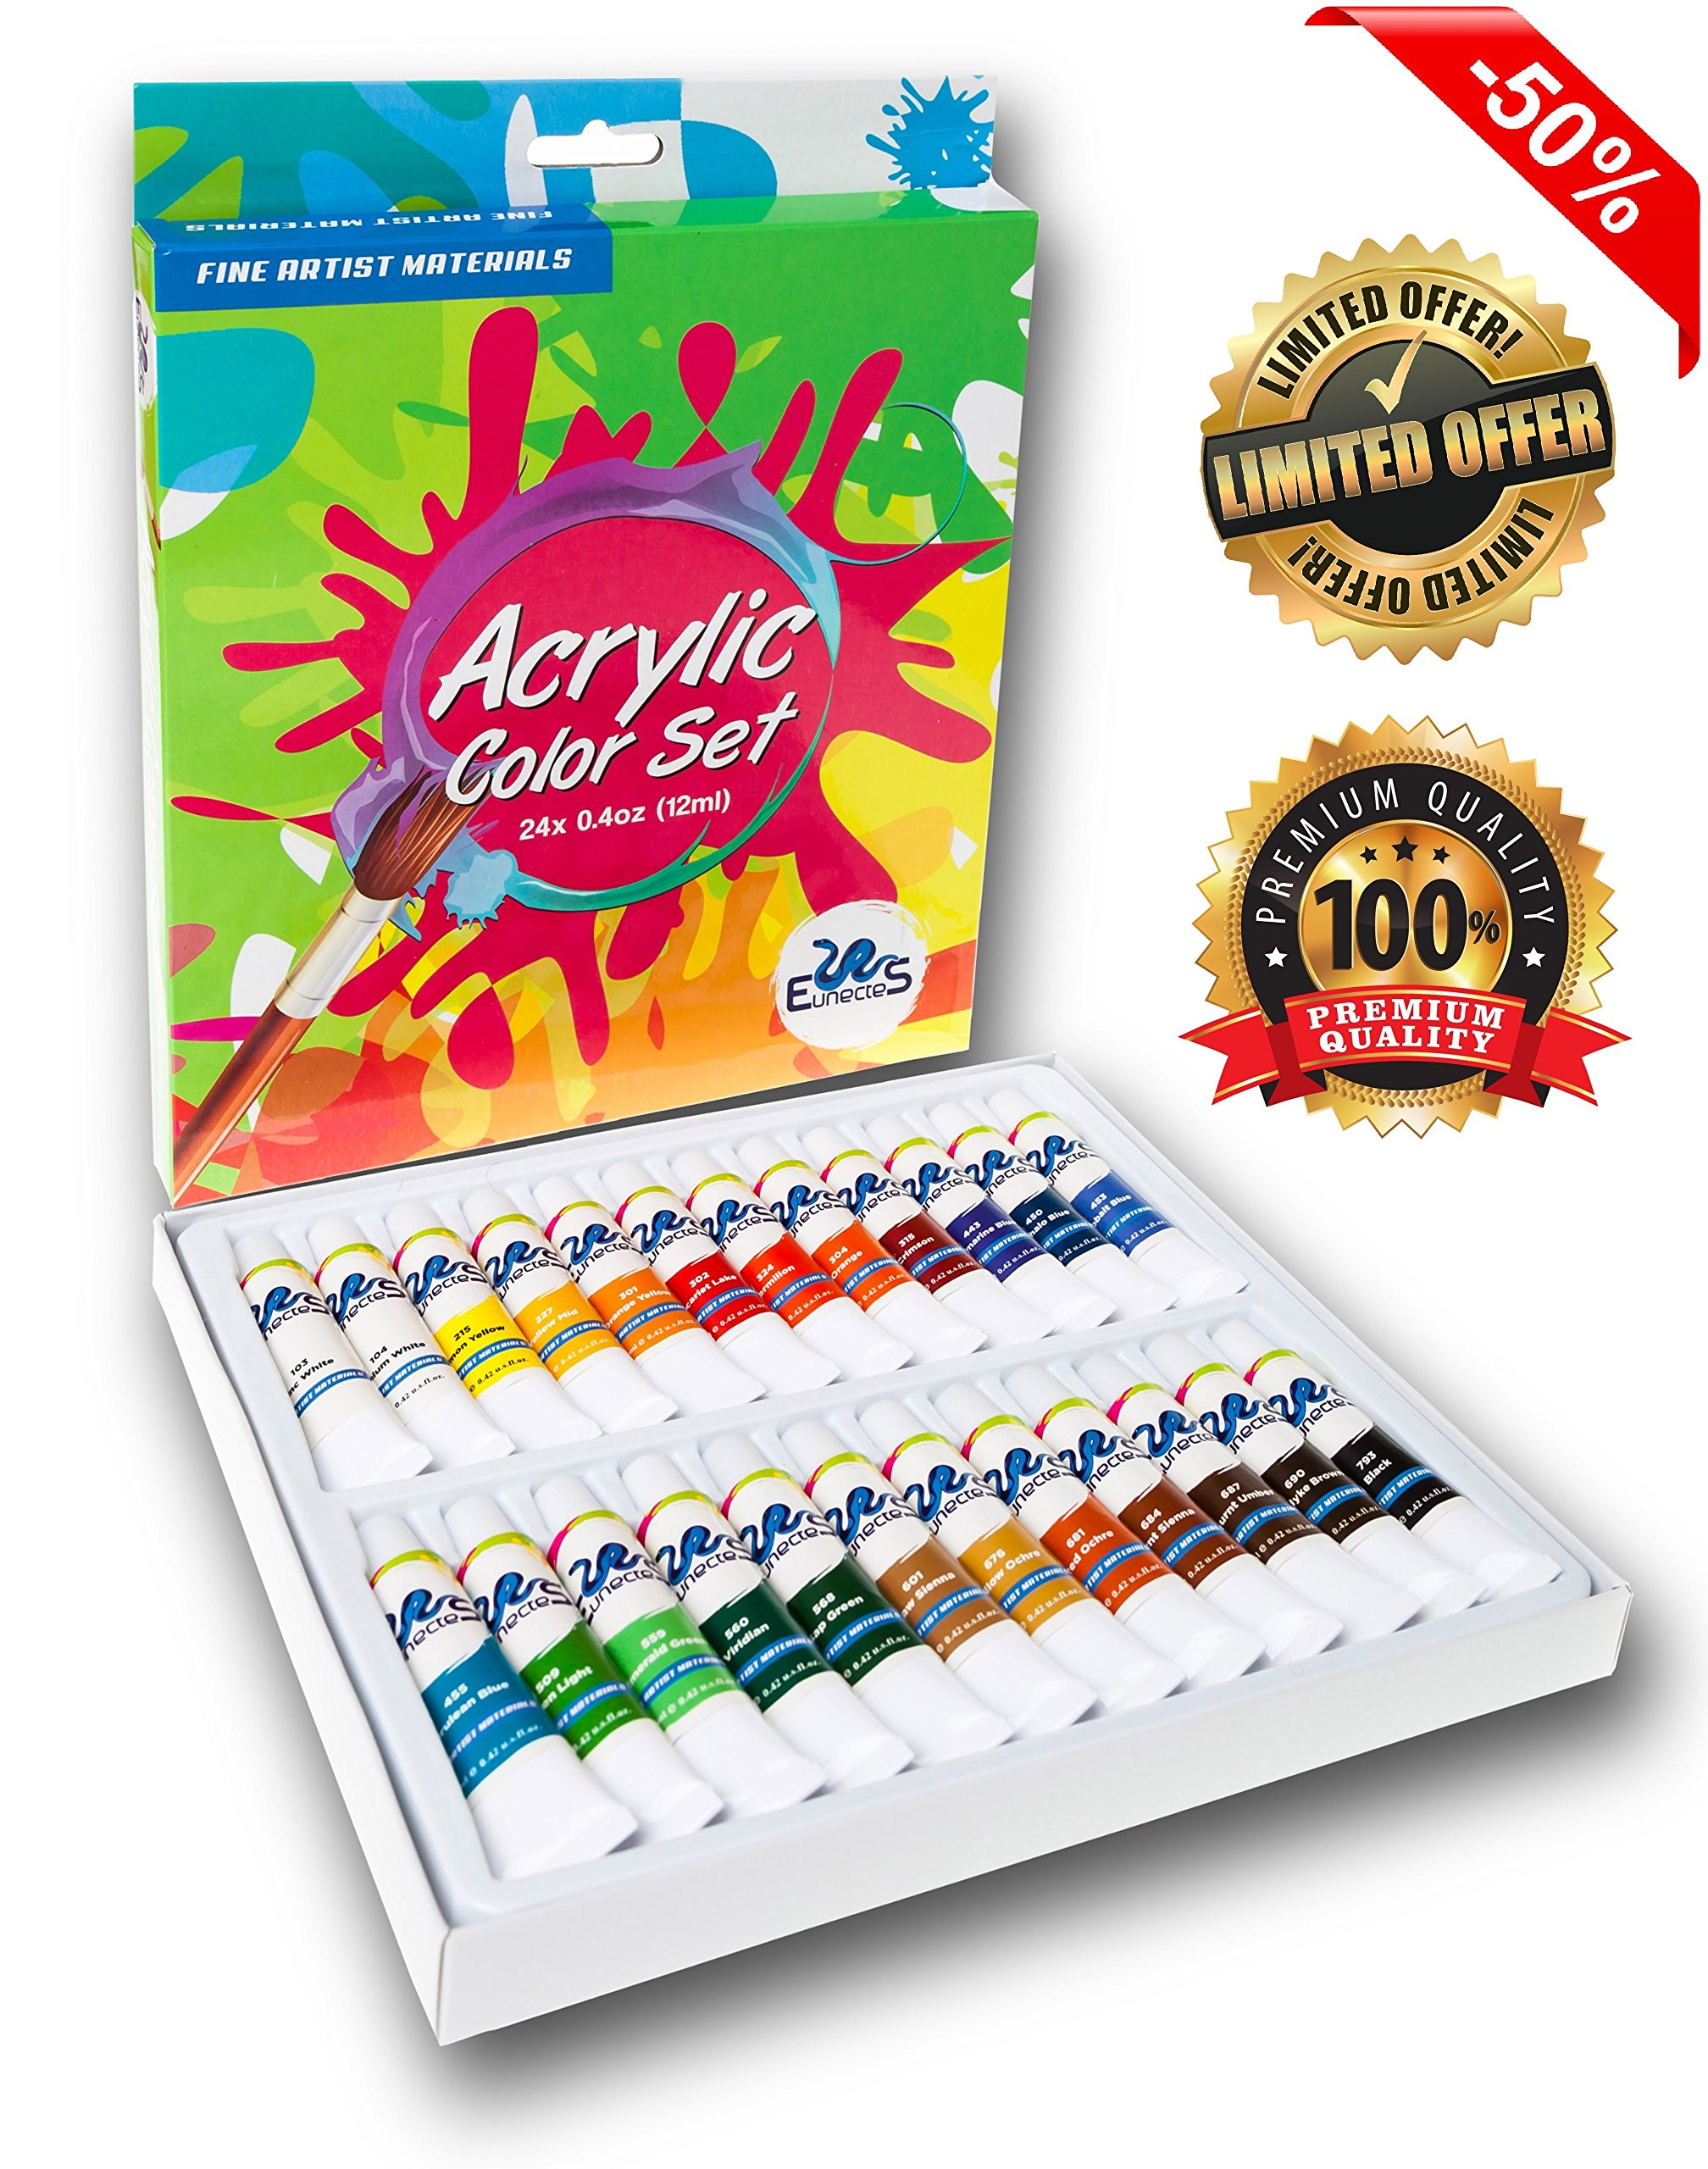 ACRYLIC PAINT SET - Best Artist Kit of 24x12ml - Color Paint - For Kids Adults Beginners and Professionals - Ebook - For Canvas, Wood, Clay, Fabric, Nail Art, Ceramic And Crafts - Money Back Guarantee